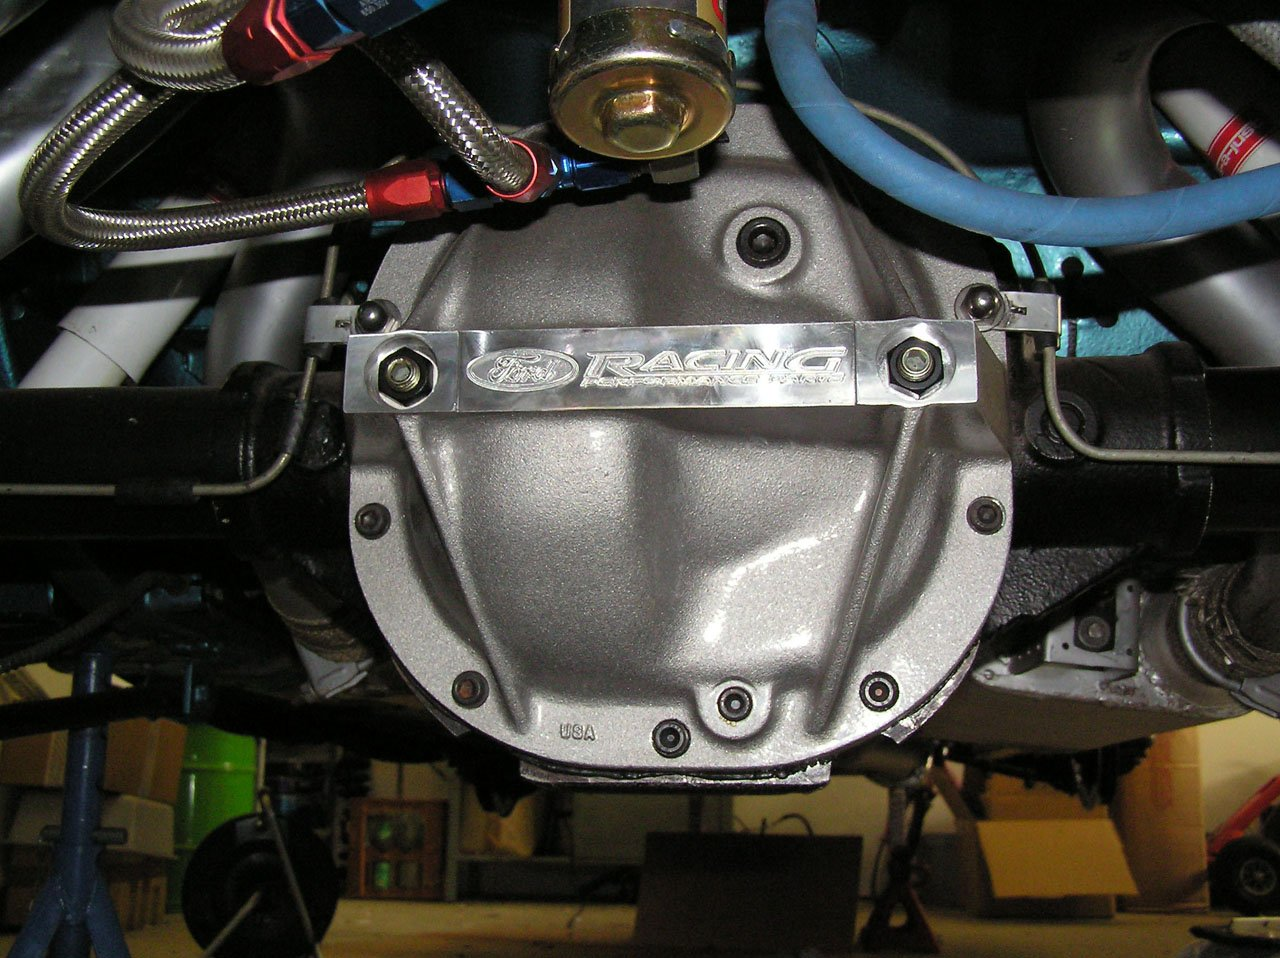 8 8 U0026quot  Rear End Into 1968 Mustang V8 Coupe